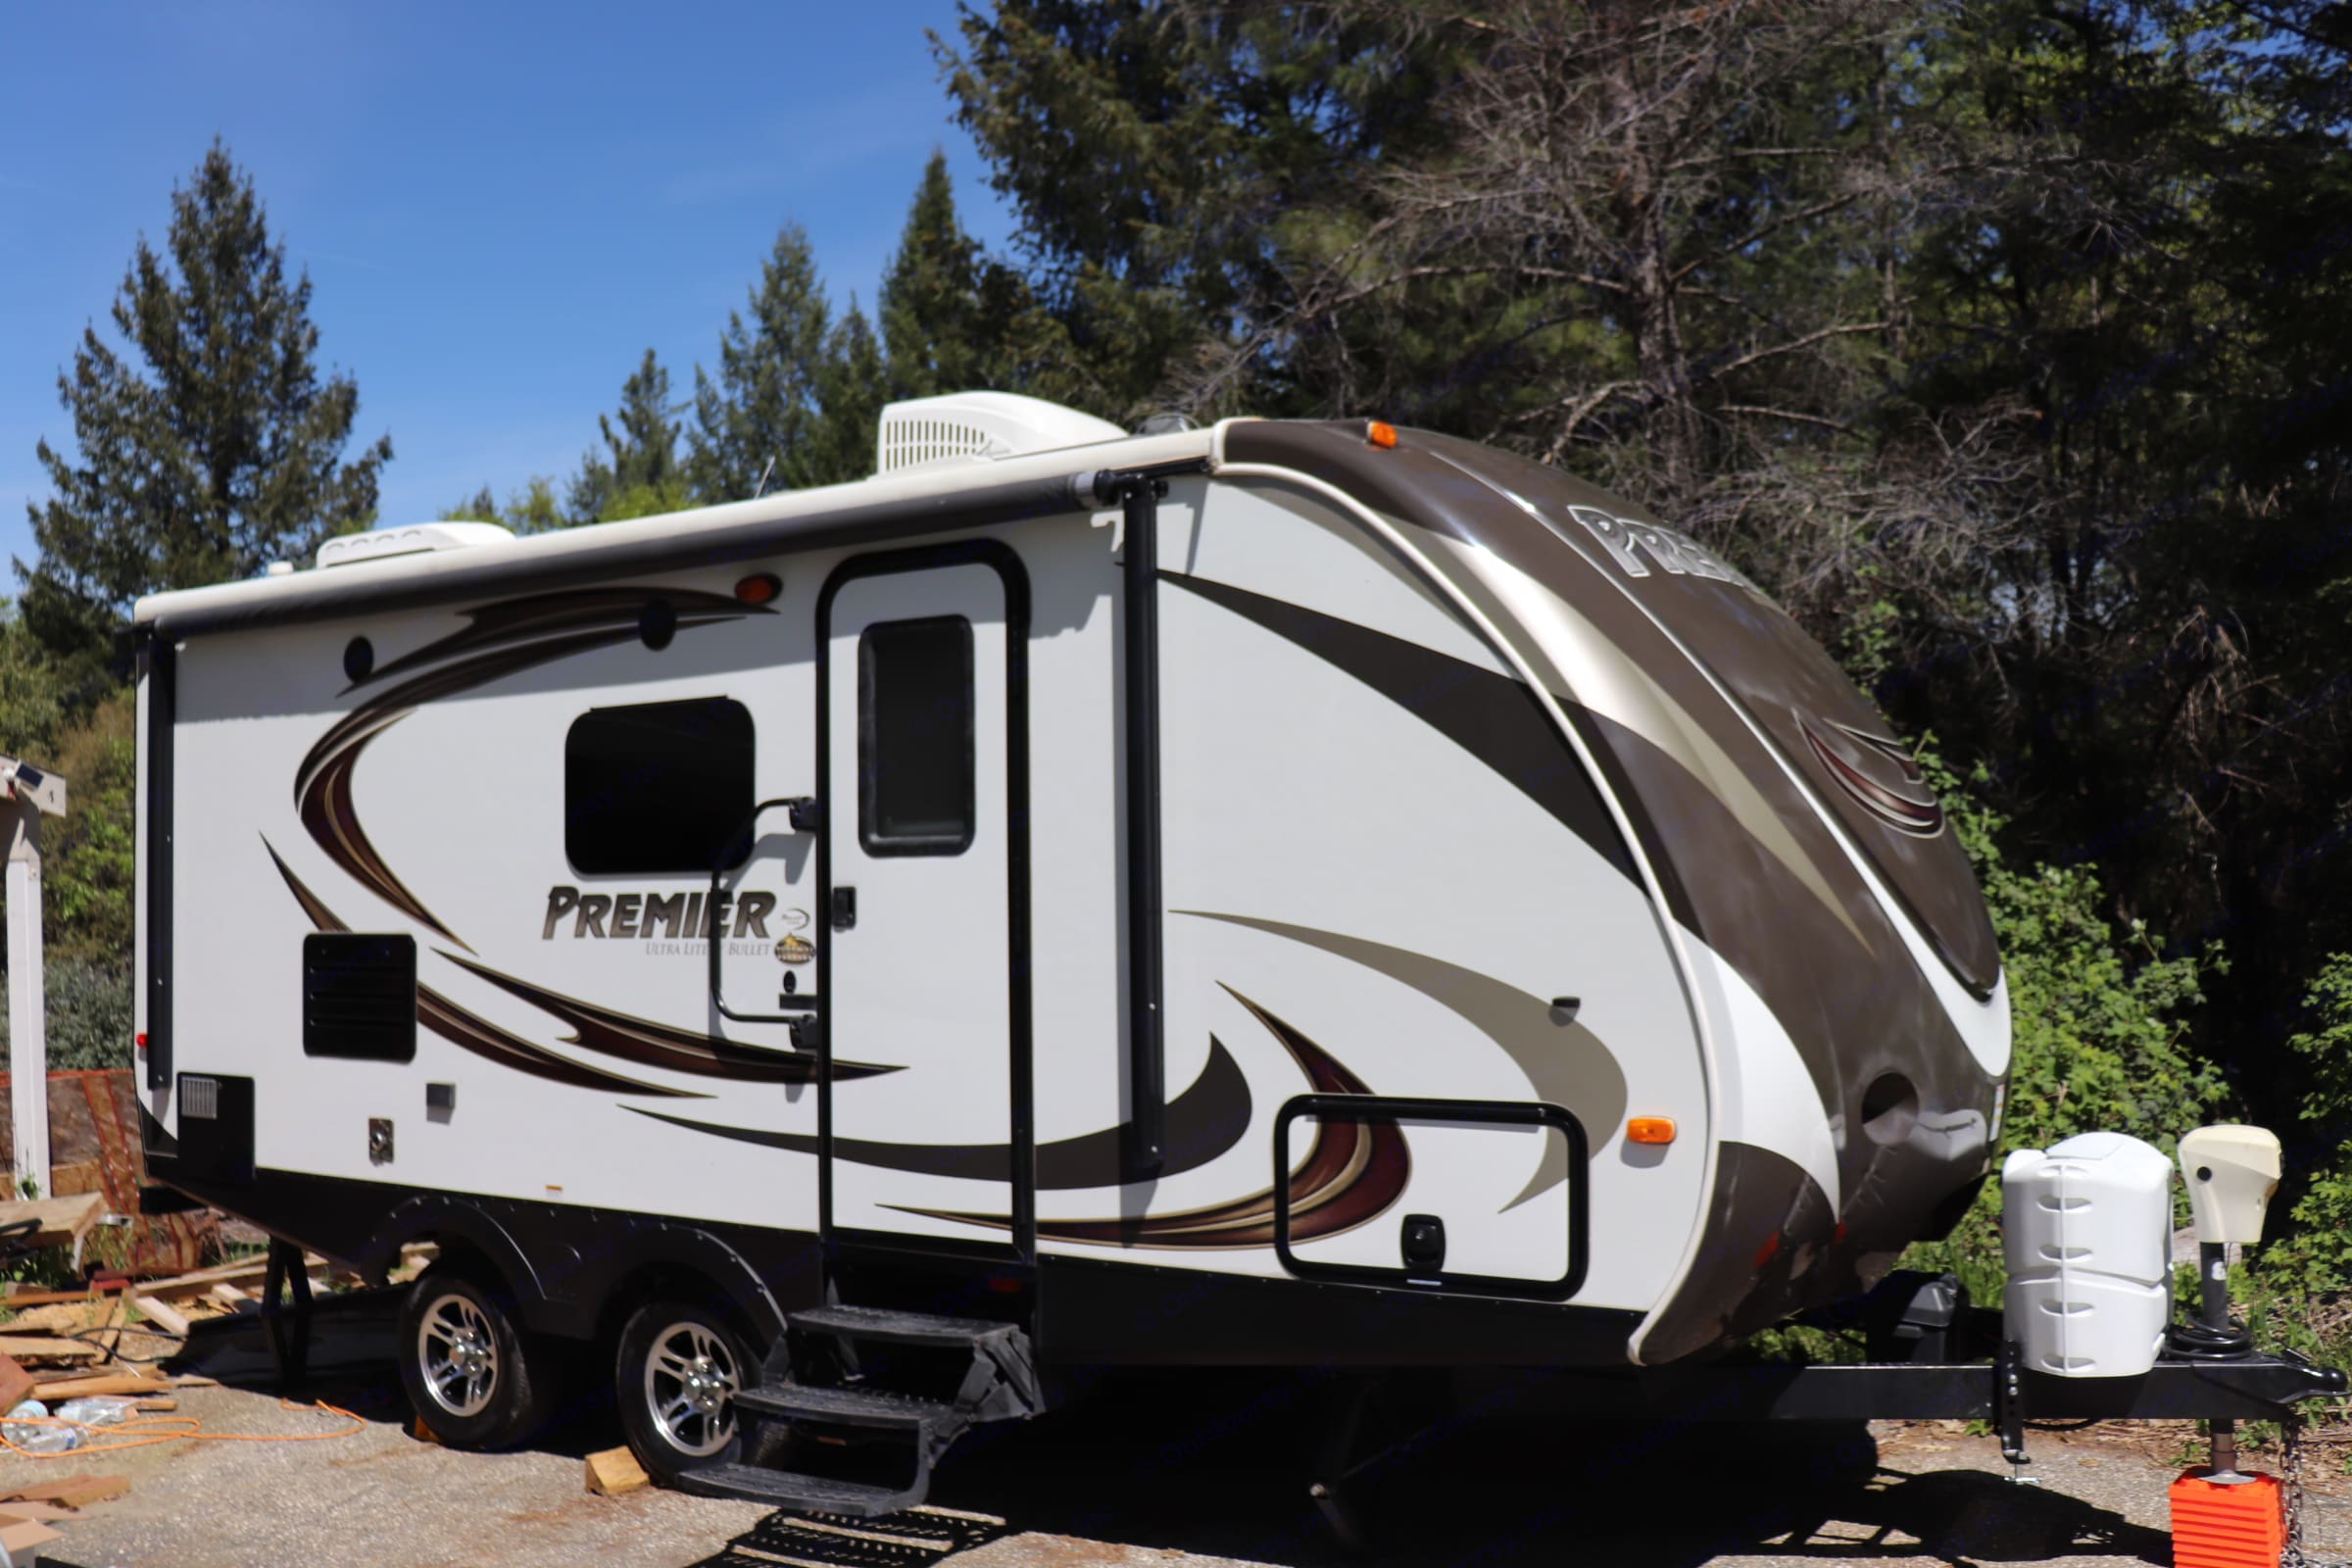 21ft easy towable keystone bullet Premier. All the comforts of home on the road!. Keystone Bullet Premier 2014